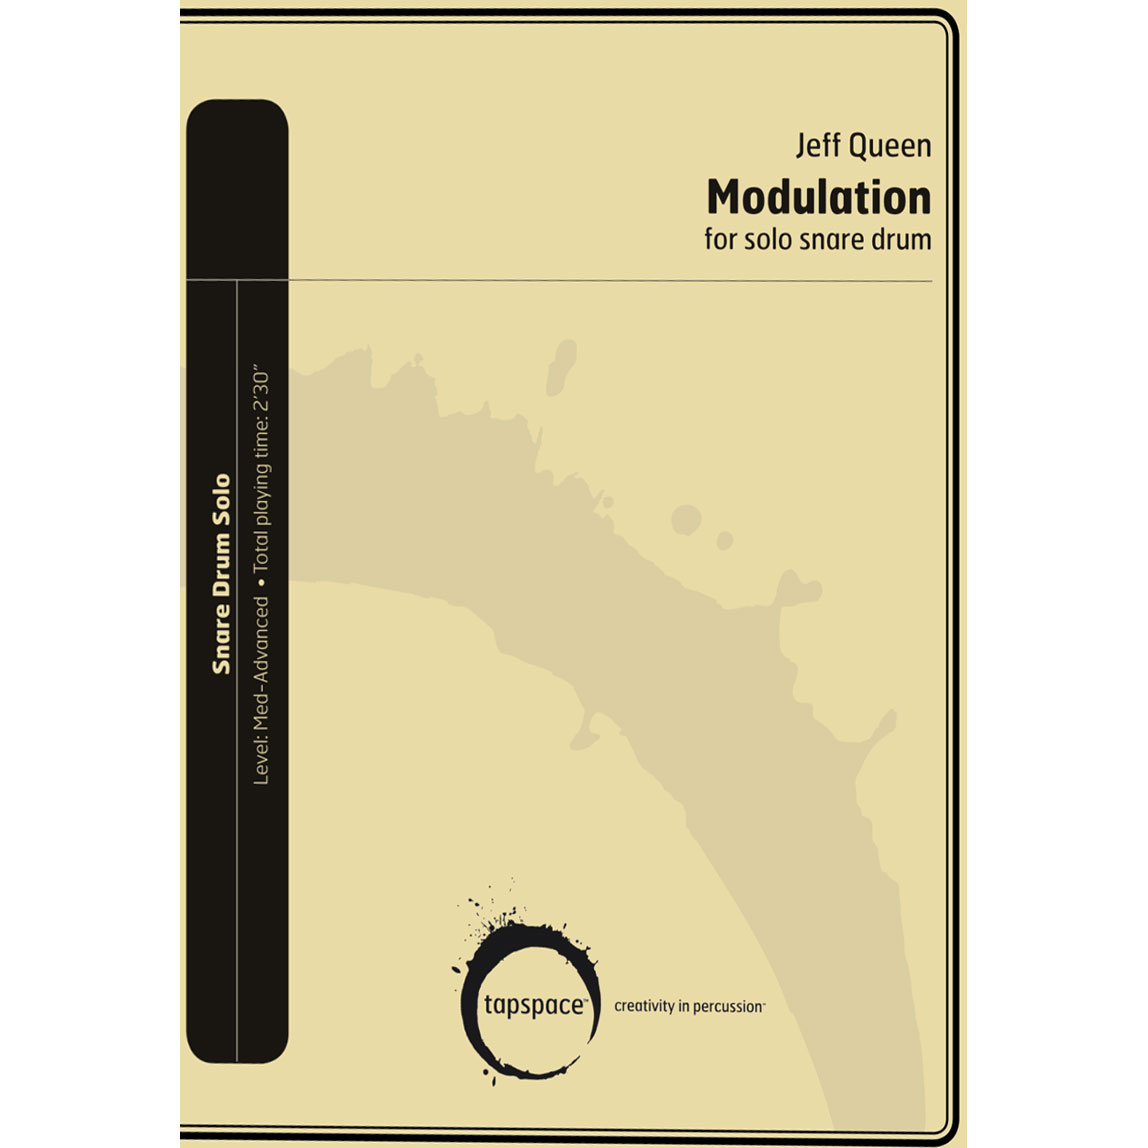 Modulation by Jeff Queen